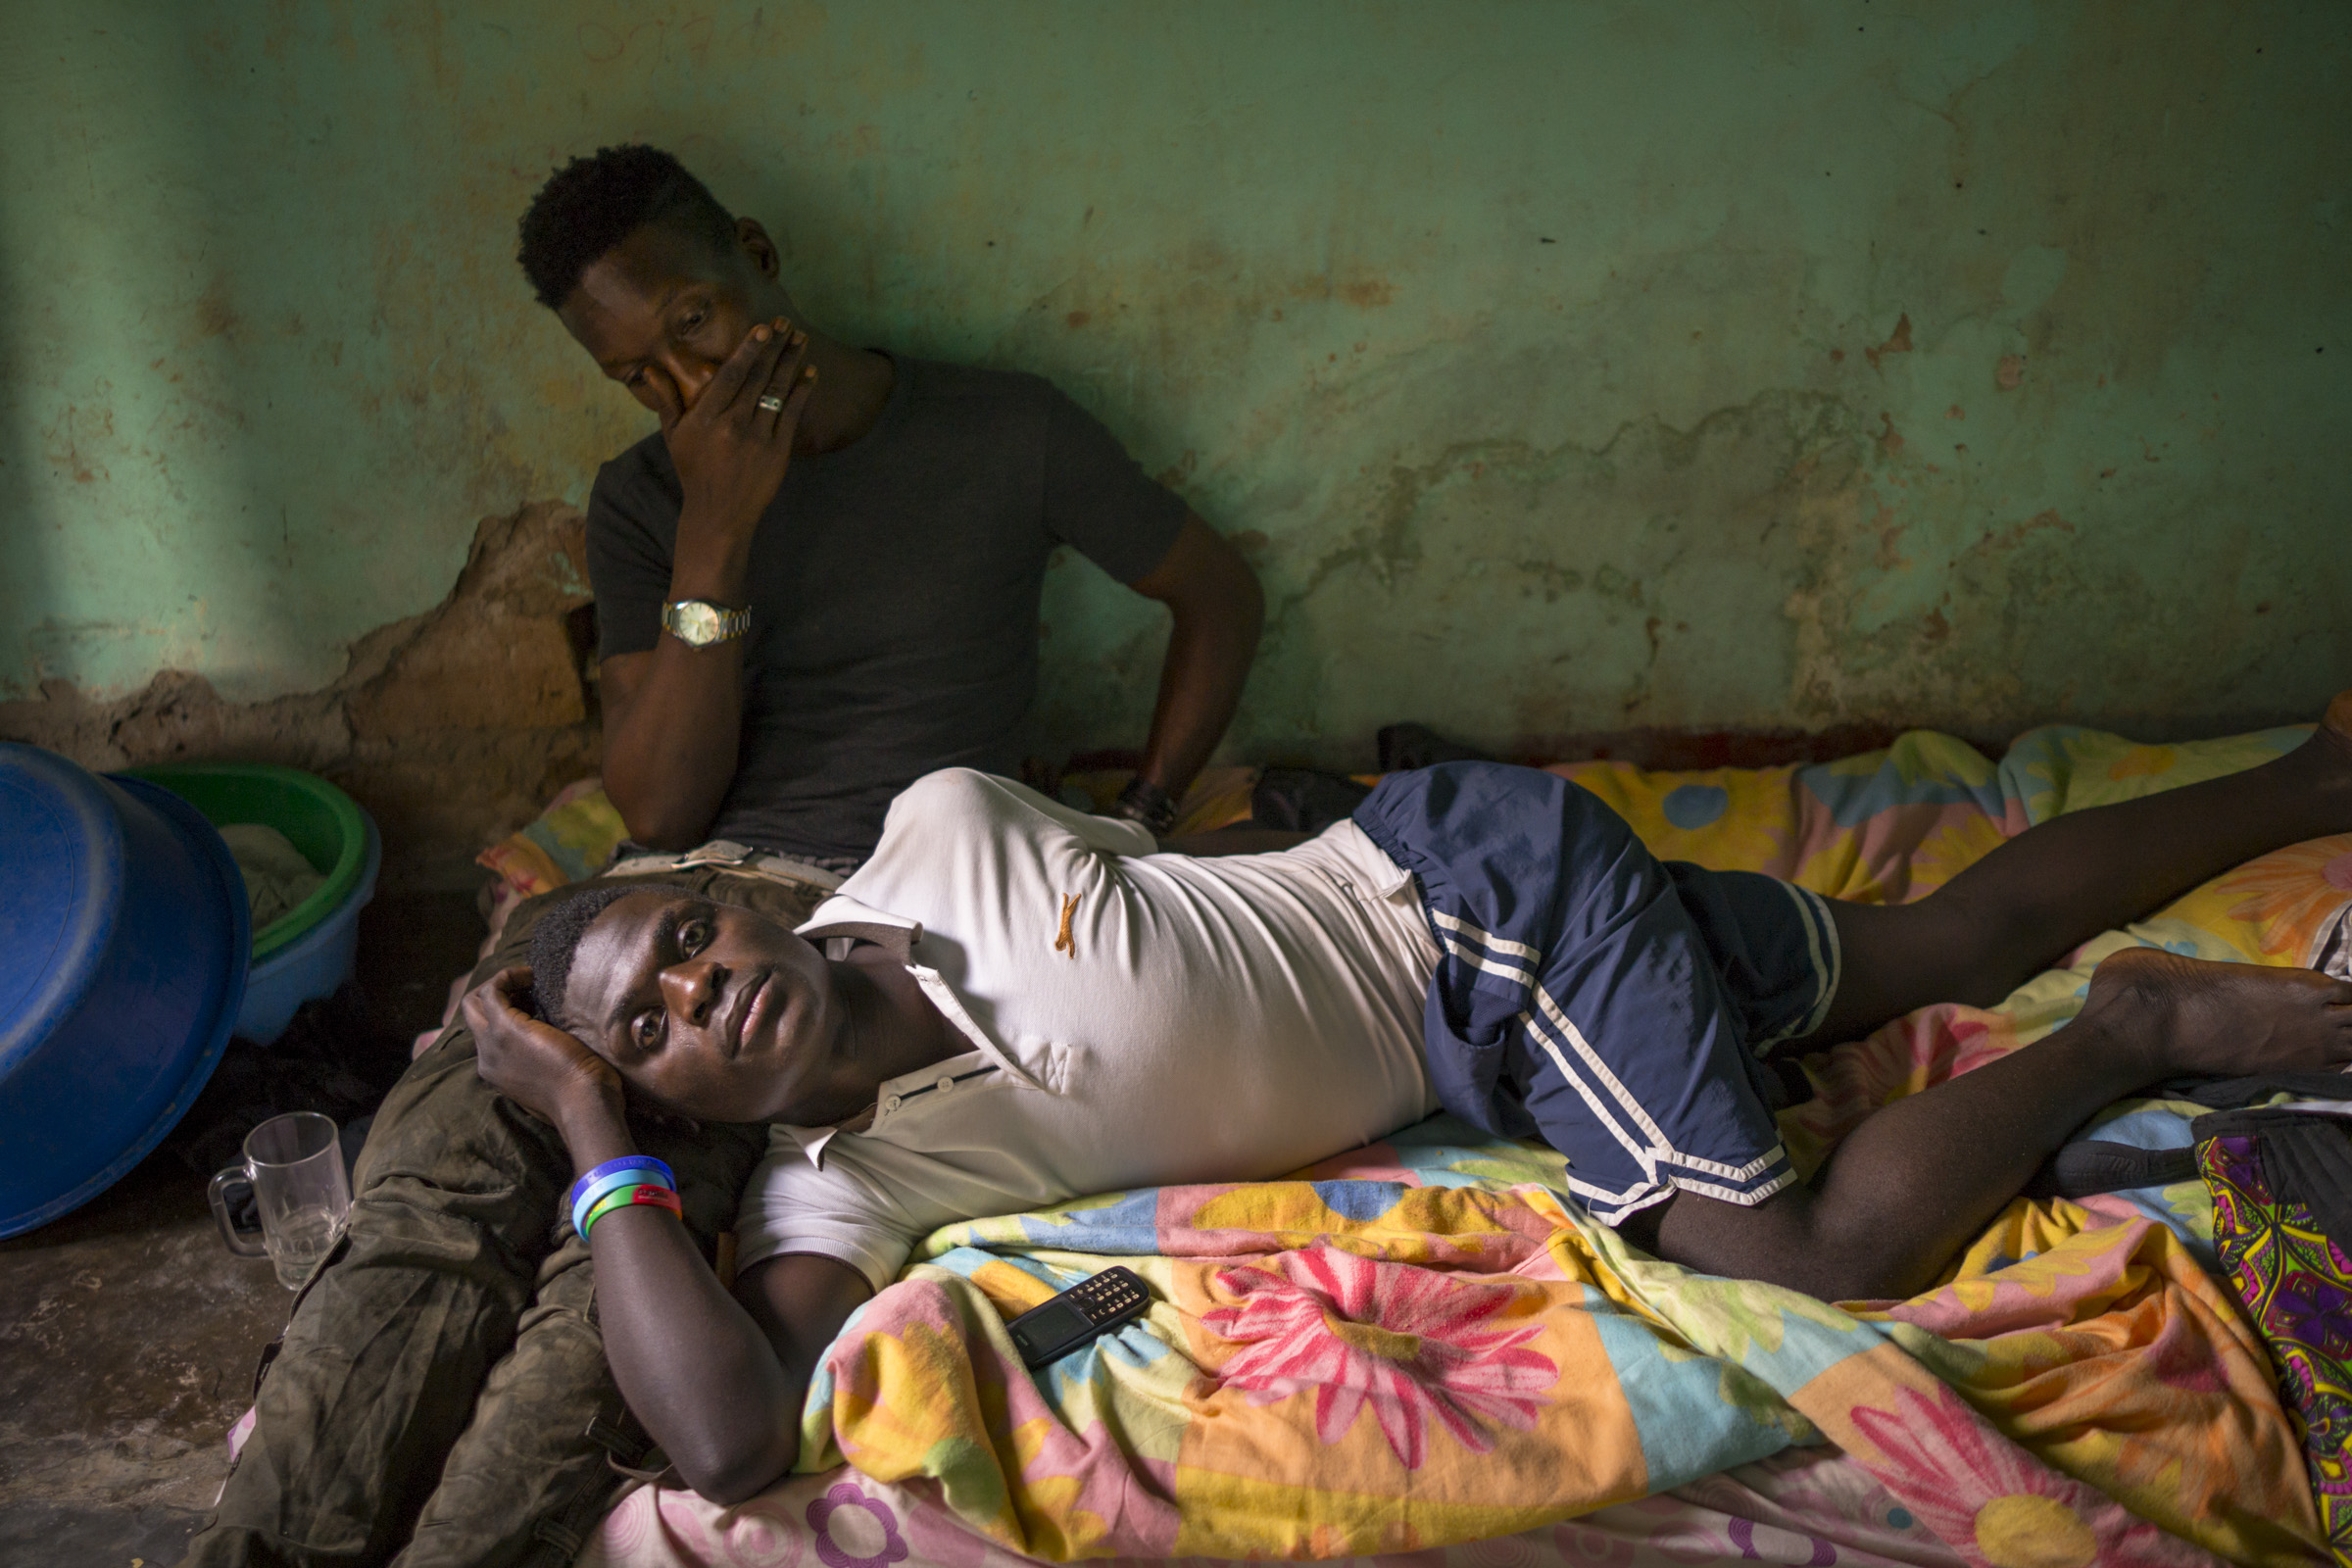 Jackson Mukasa lies on his bed, resting his head on the lap of his friend, Kim Mukisa, who has dropped by for a visit. The two were beaten and arrested in January 2014, accused of homosexuality. After 5 months in jail, their case was dismissed for lack of prosecution. After their release , they began life anew, having been robbed of their posessions. Mukisa, a clothing designer, also lost his atelier and shop in downtown Kampala. (Photo by Diana Zeyneb Alhindawi/GroundTruth)